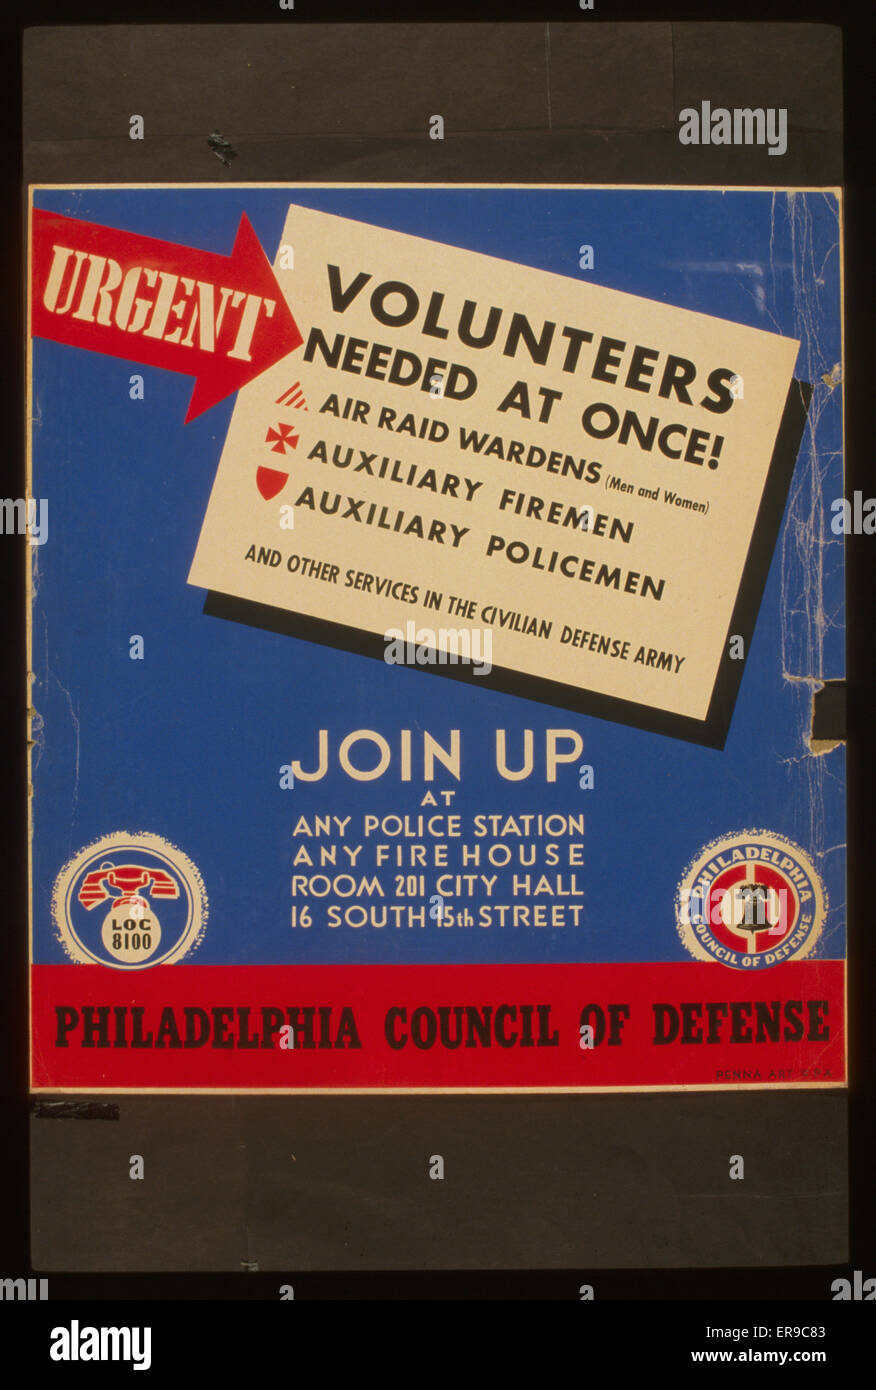 Urgent - volunteers needed at once! Join up at any police station, any firehouse, or Room 201 City Hall, 16 South - Stock Image